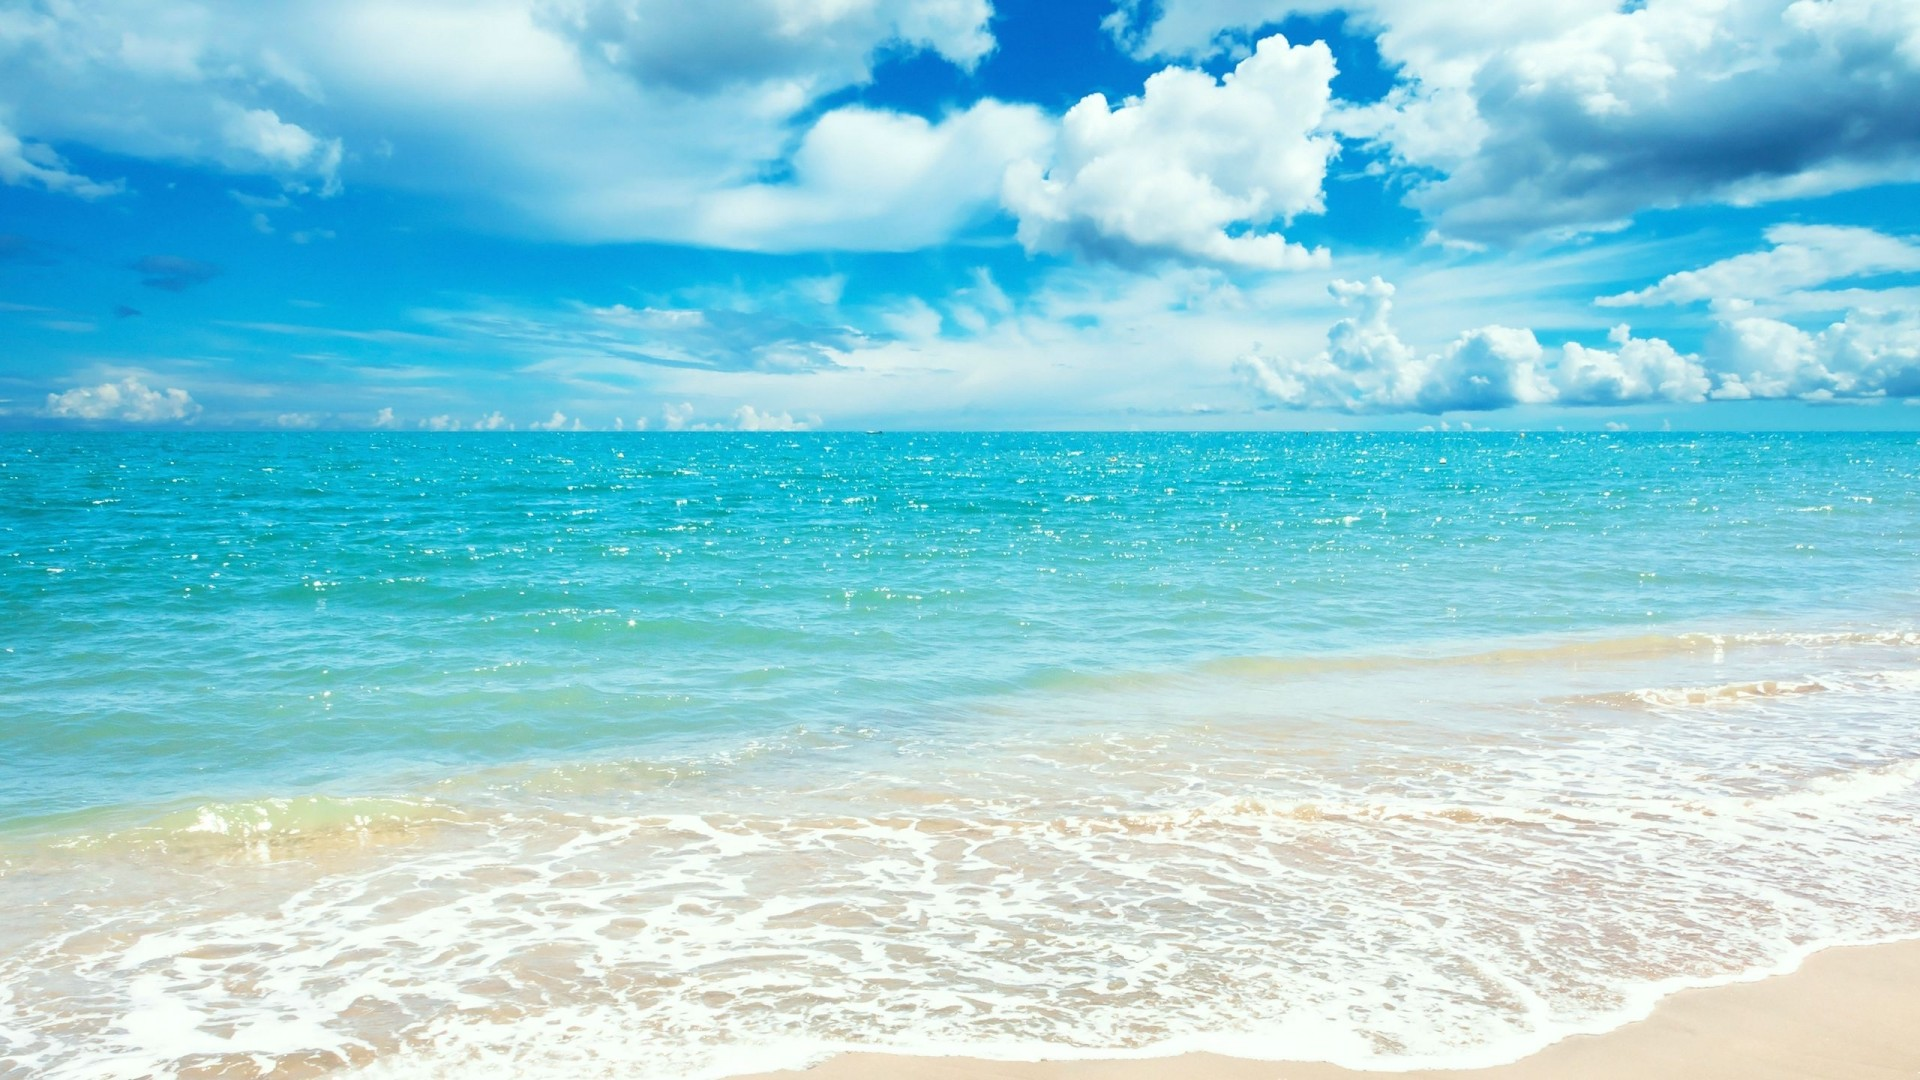 Summer Beach   Wallpaper High Definition High Quality 1920x1080